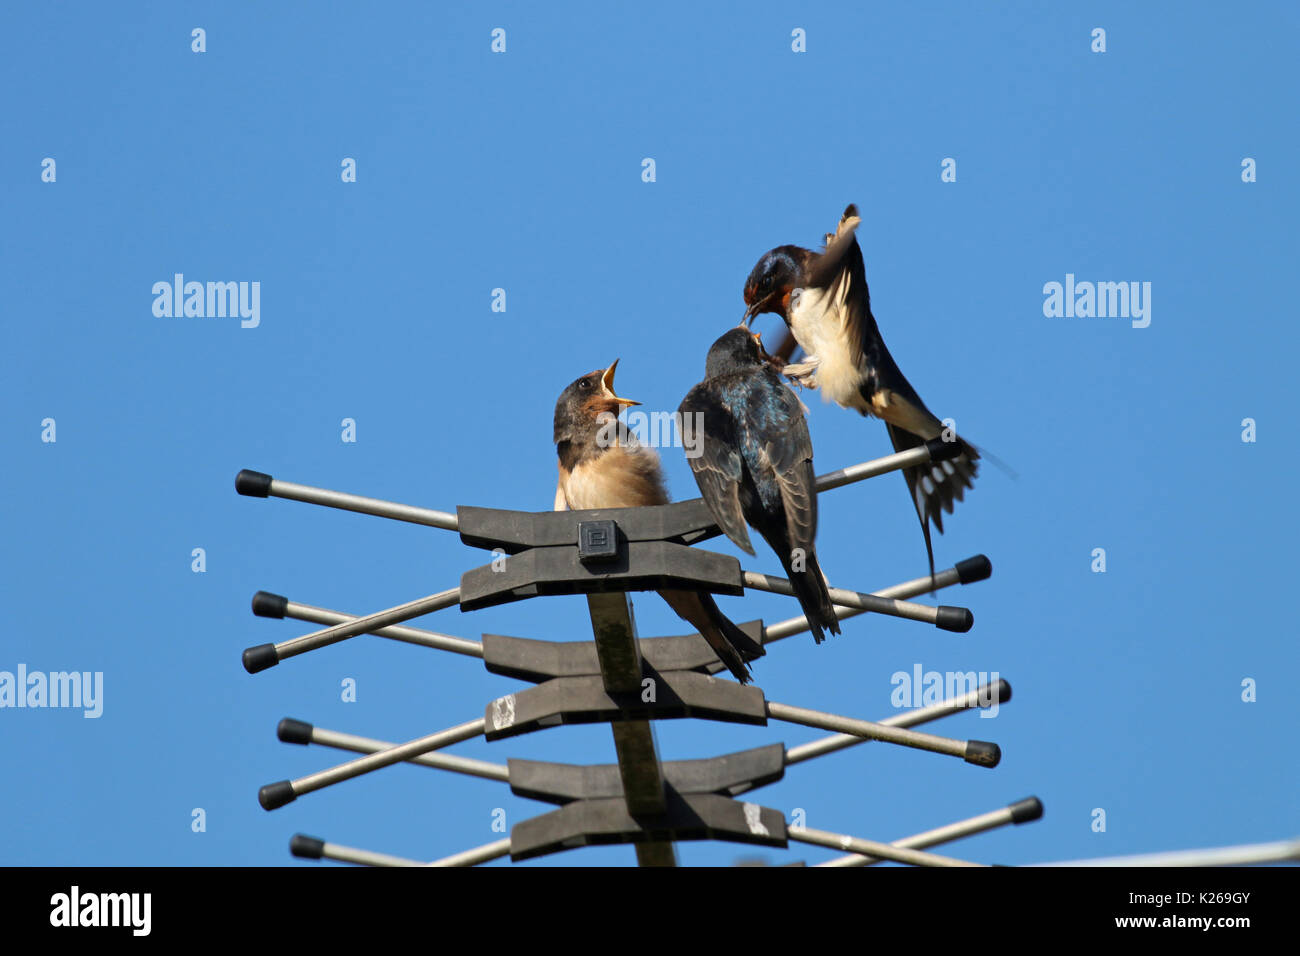 Adult swallow feeding young fledglings on TV aerial without landing - Stock Image